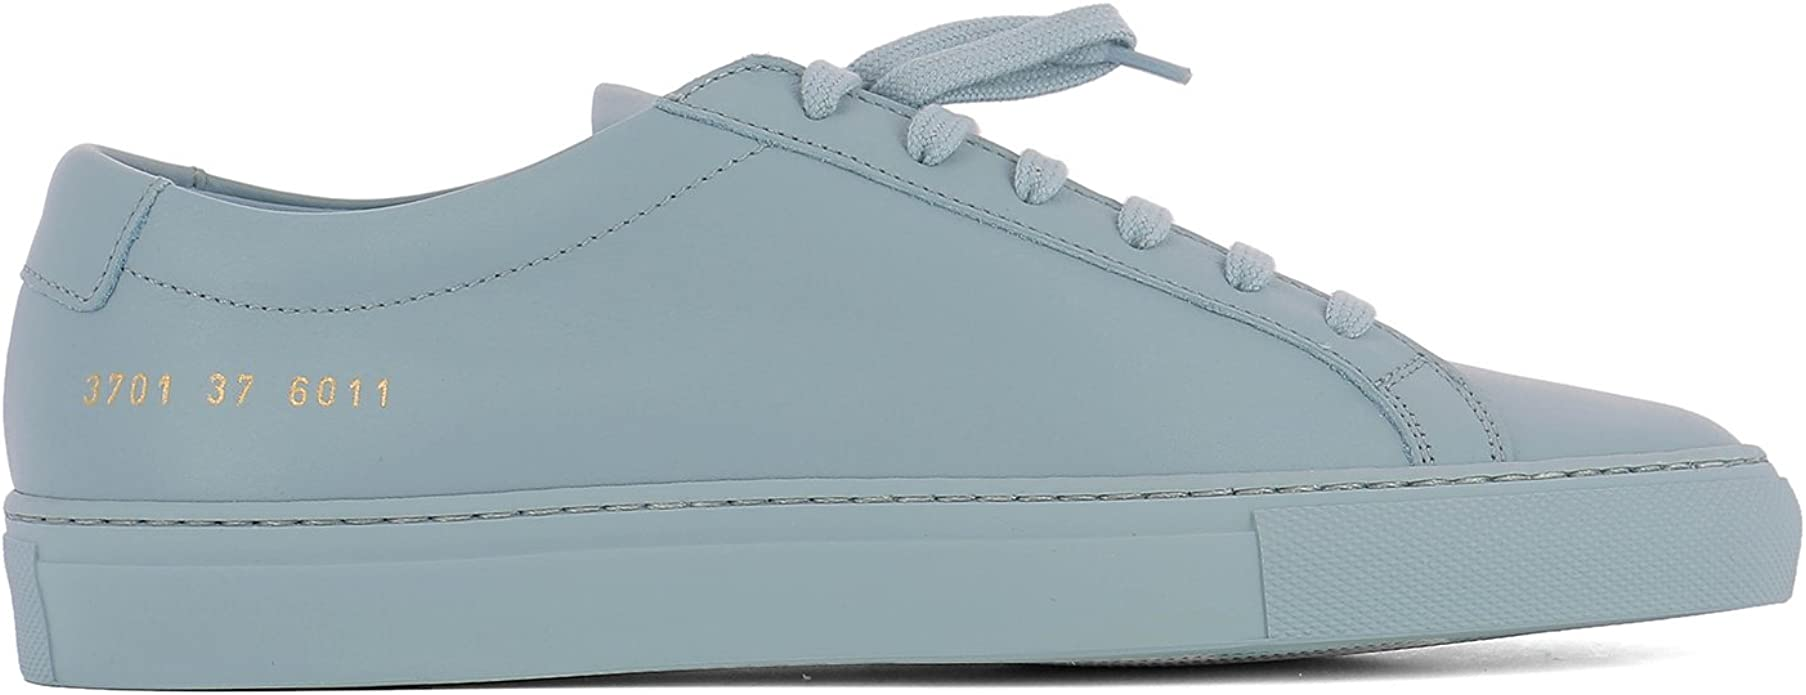 Light Blue Leather Sneakers: Amazon.ca